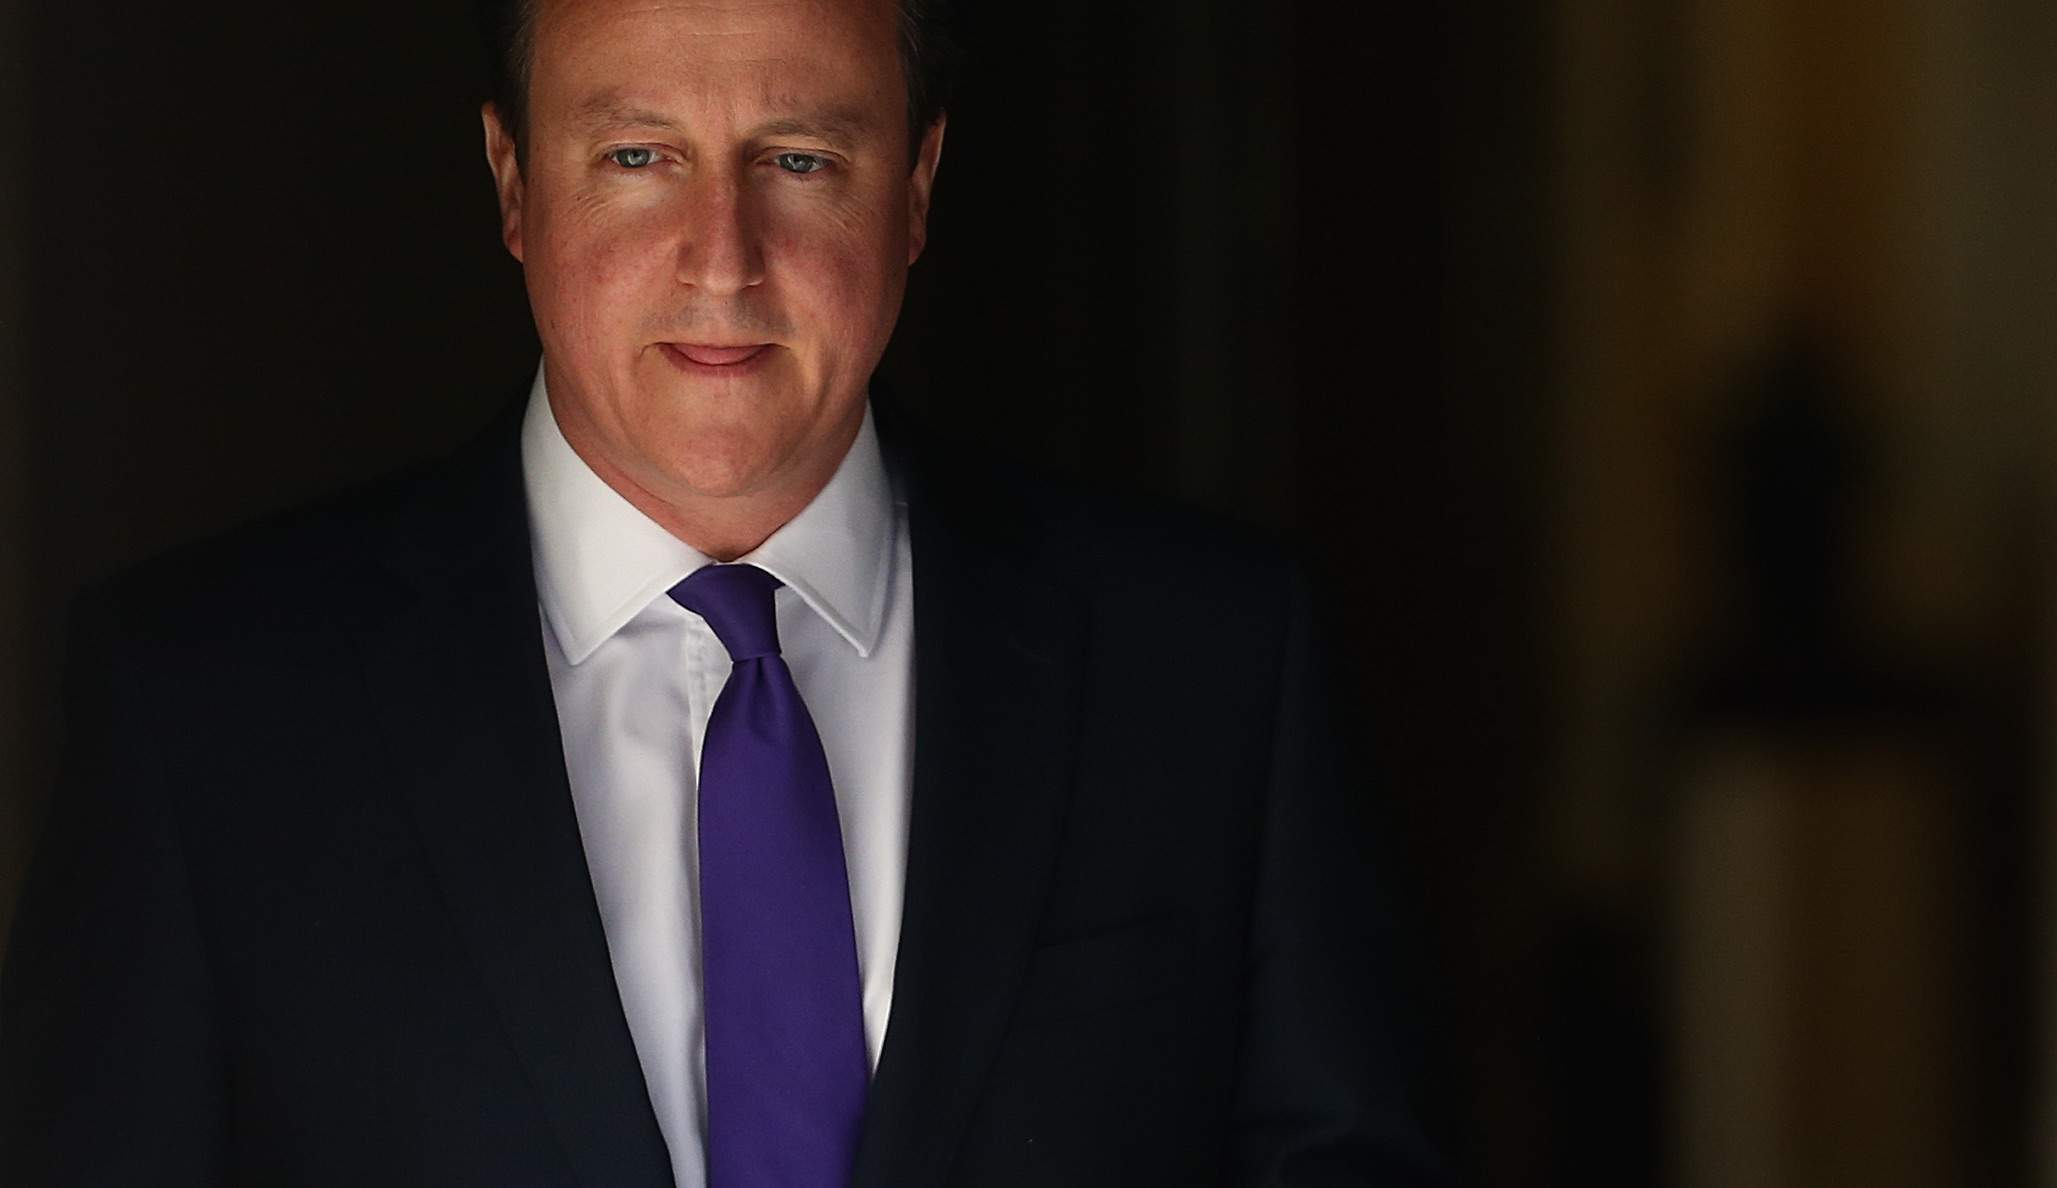 Tories say one thing and do another on tax avoidance